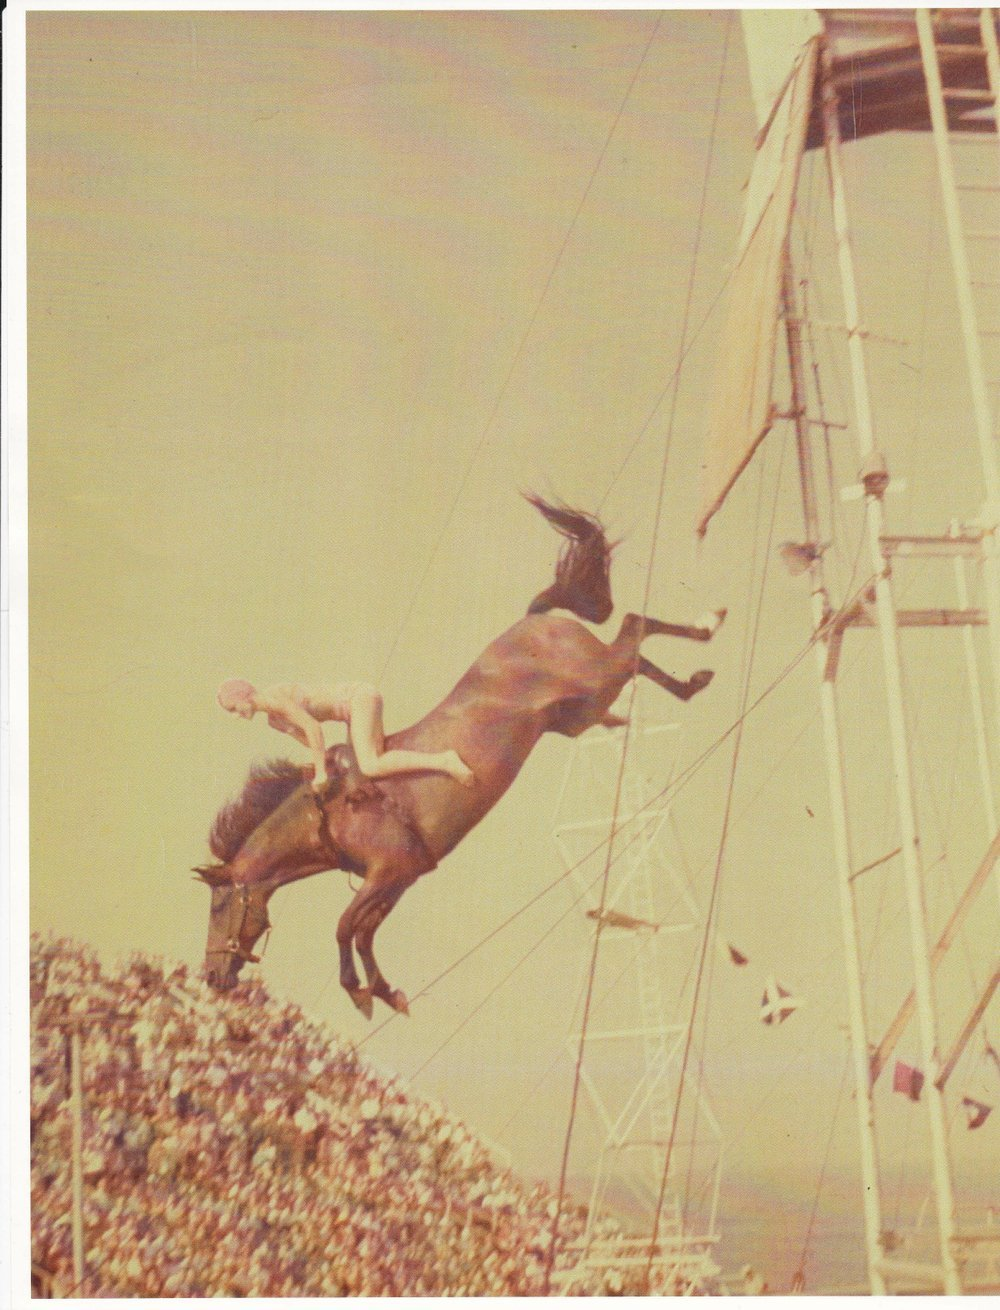 Ann Miles and Gamal dive from the High Diving Horse show's 40-foot tower on Steel Pier at Atlantic City in the 1960s. (Courtesy Ann Miles)